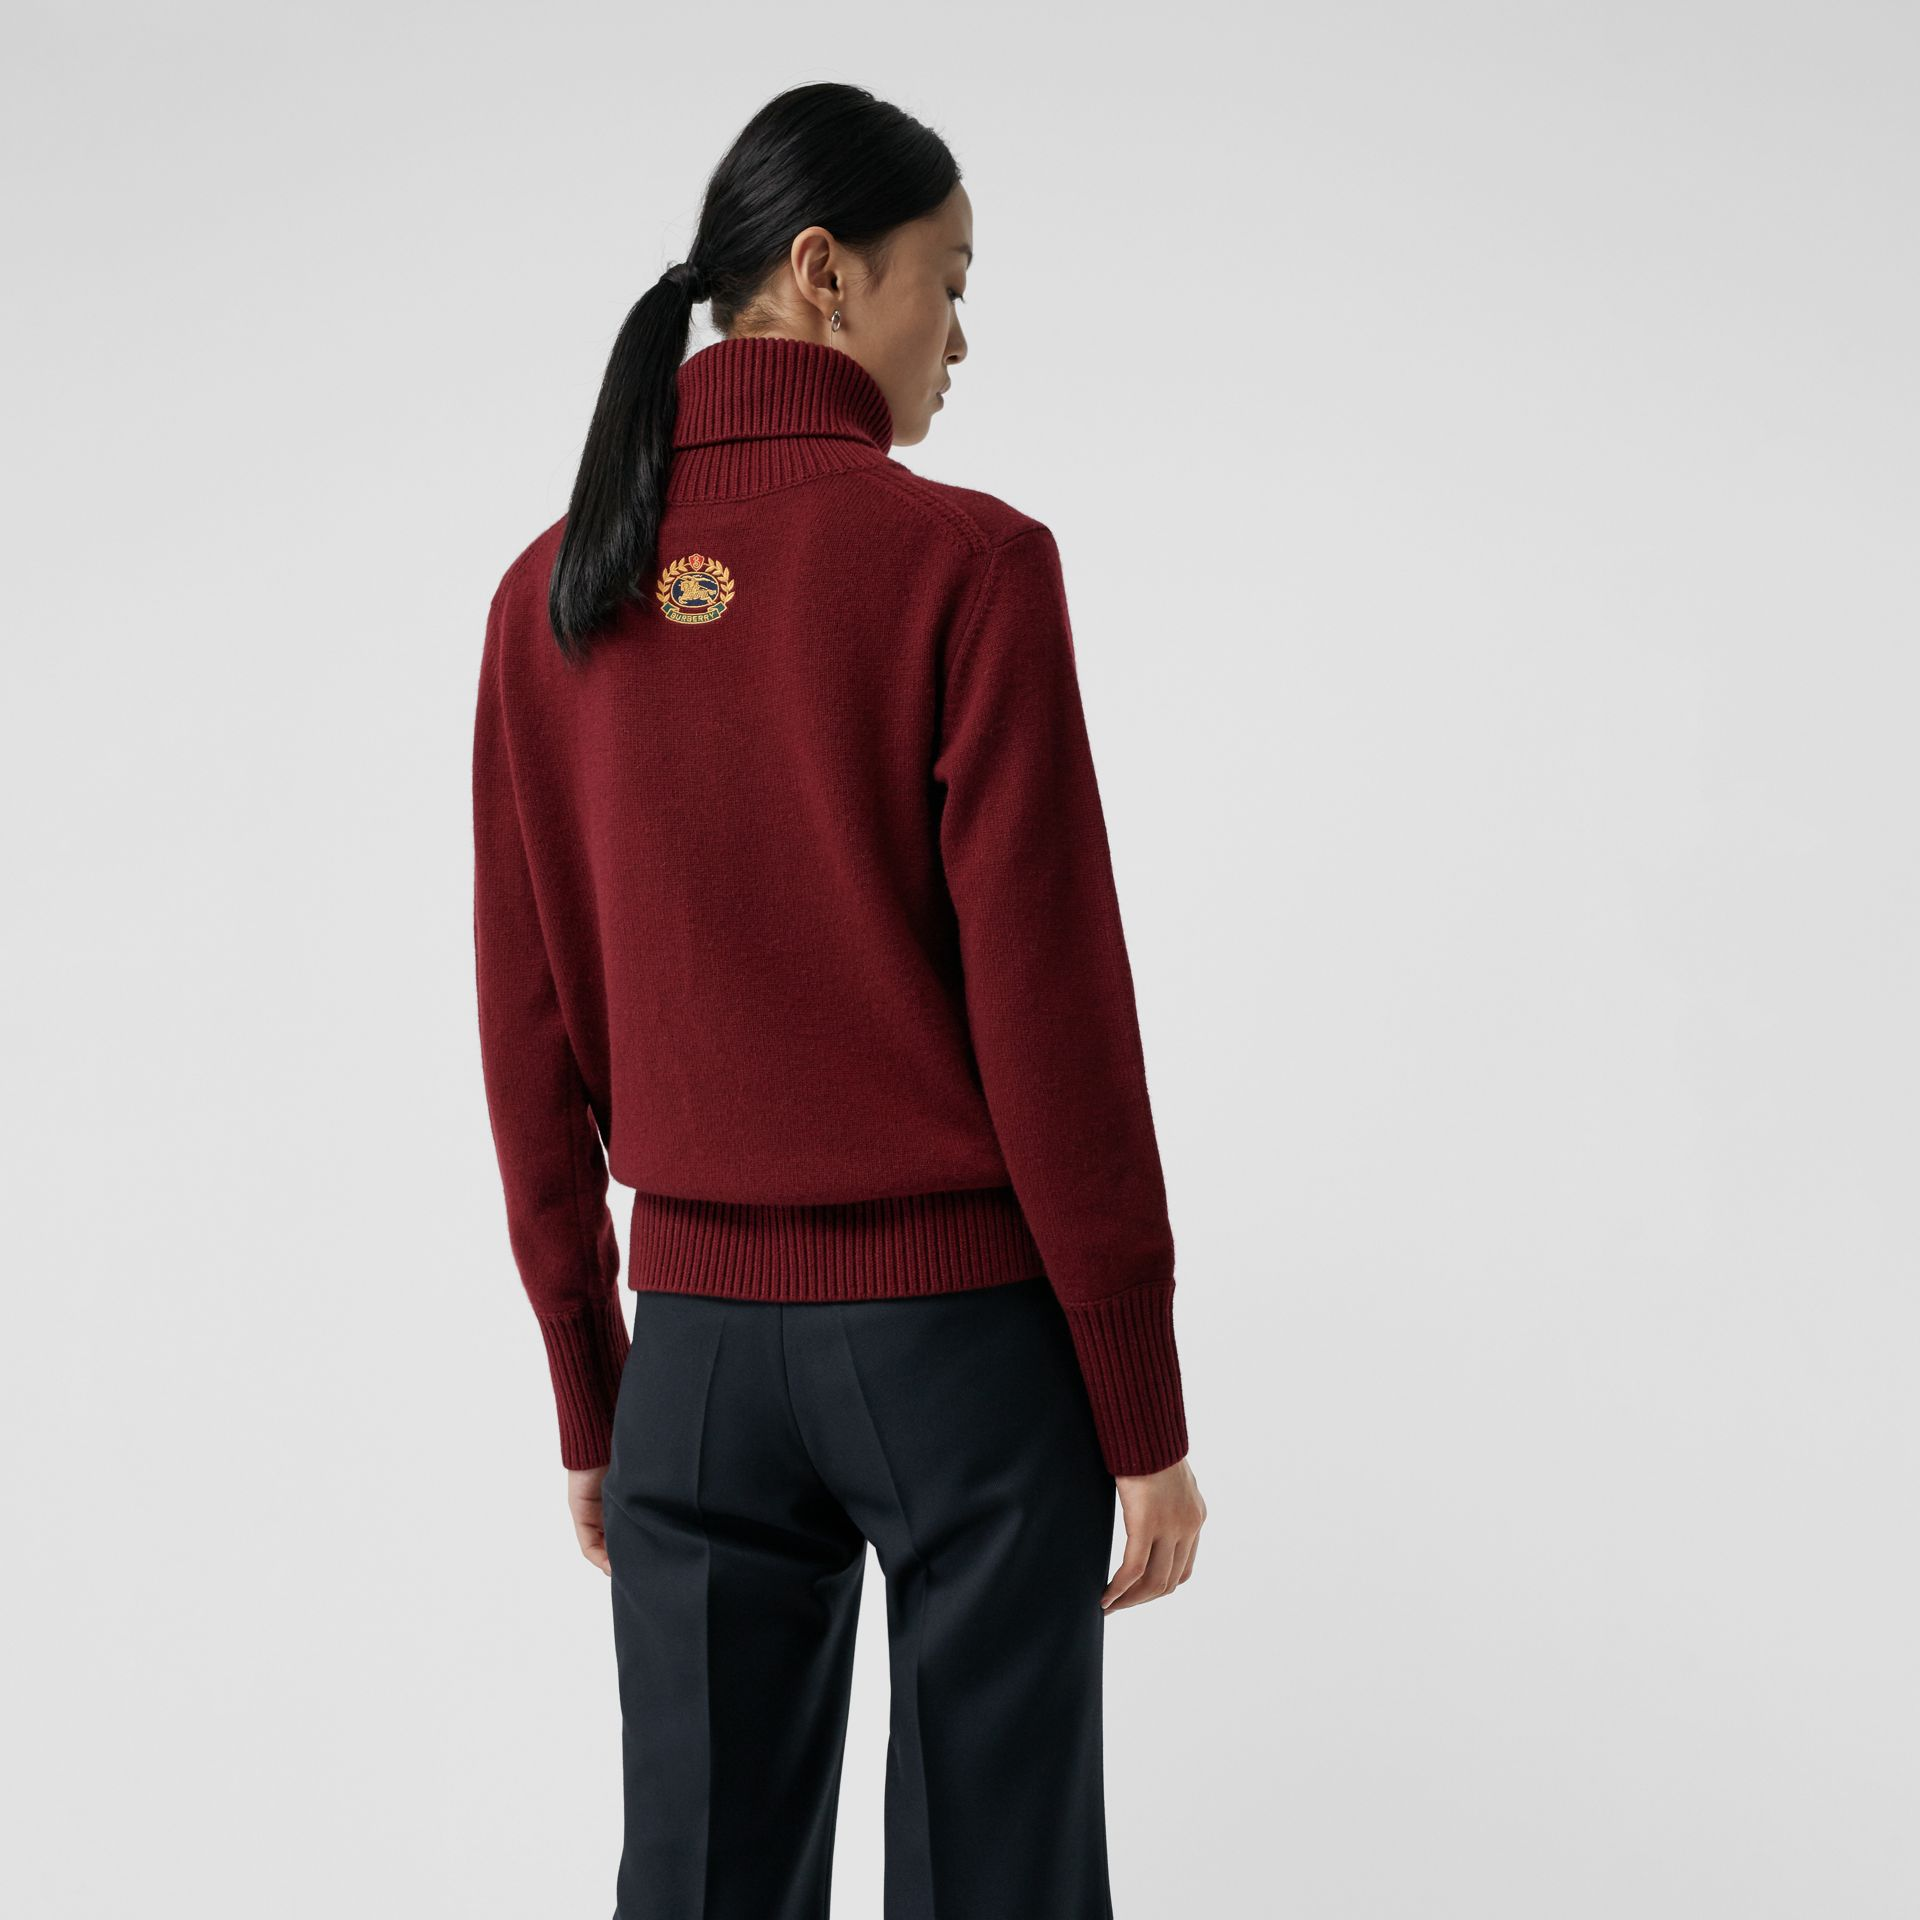 Embroidered Crest Cashmere Roll-neck Sweater in Red - Women | Burberry - gallery image 2